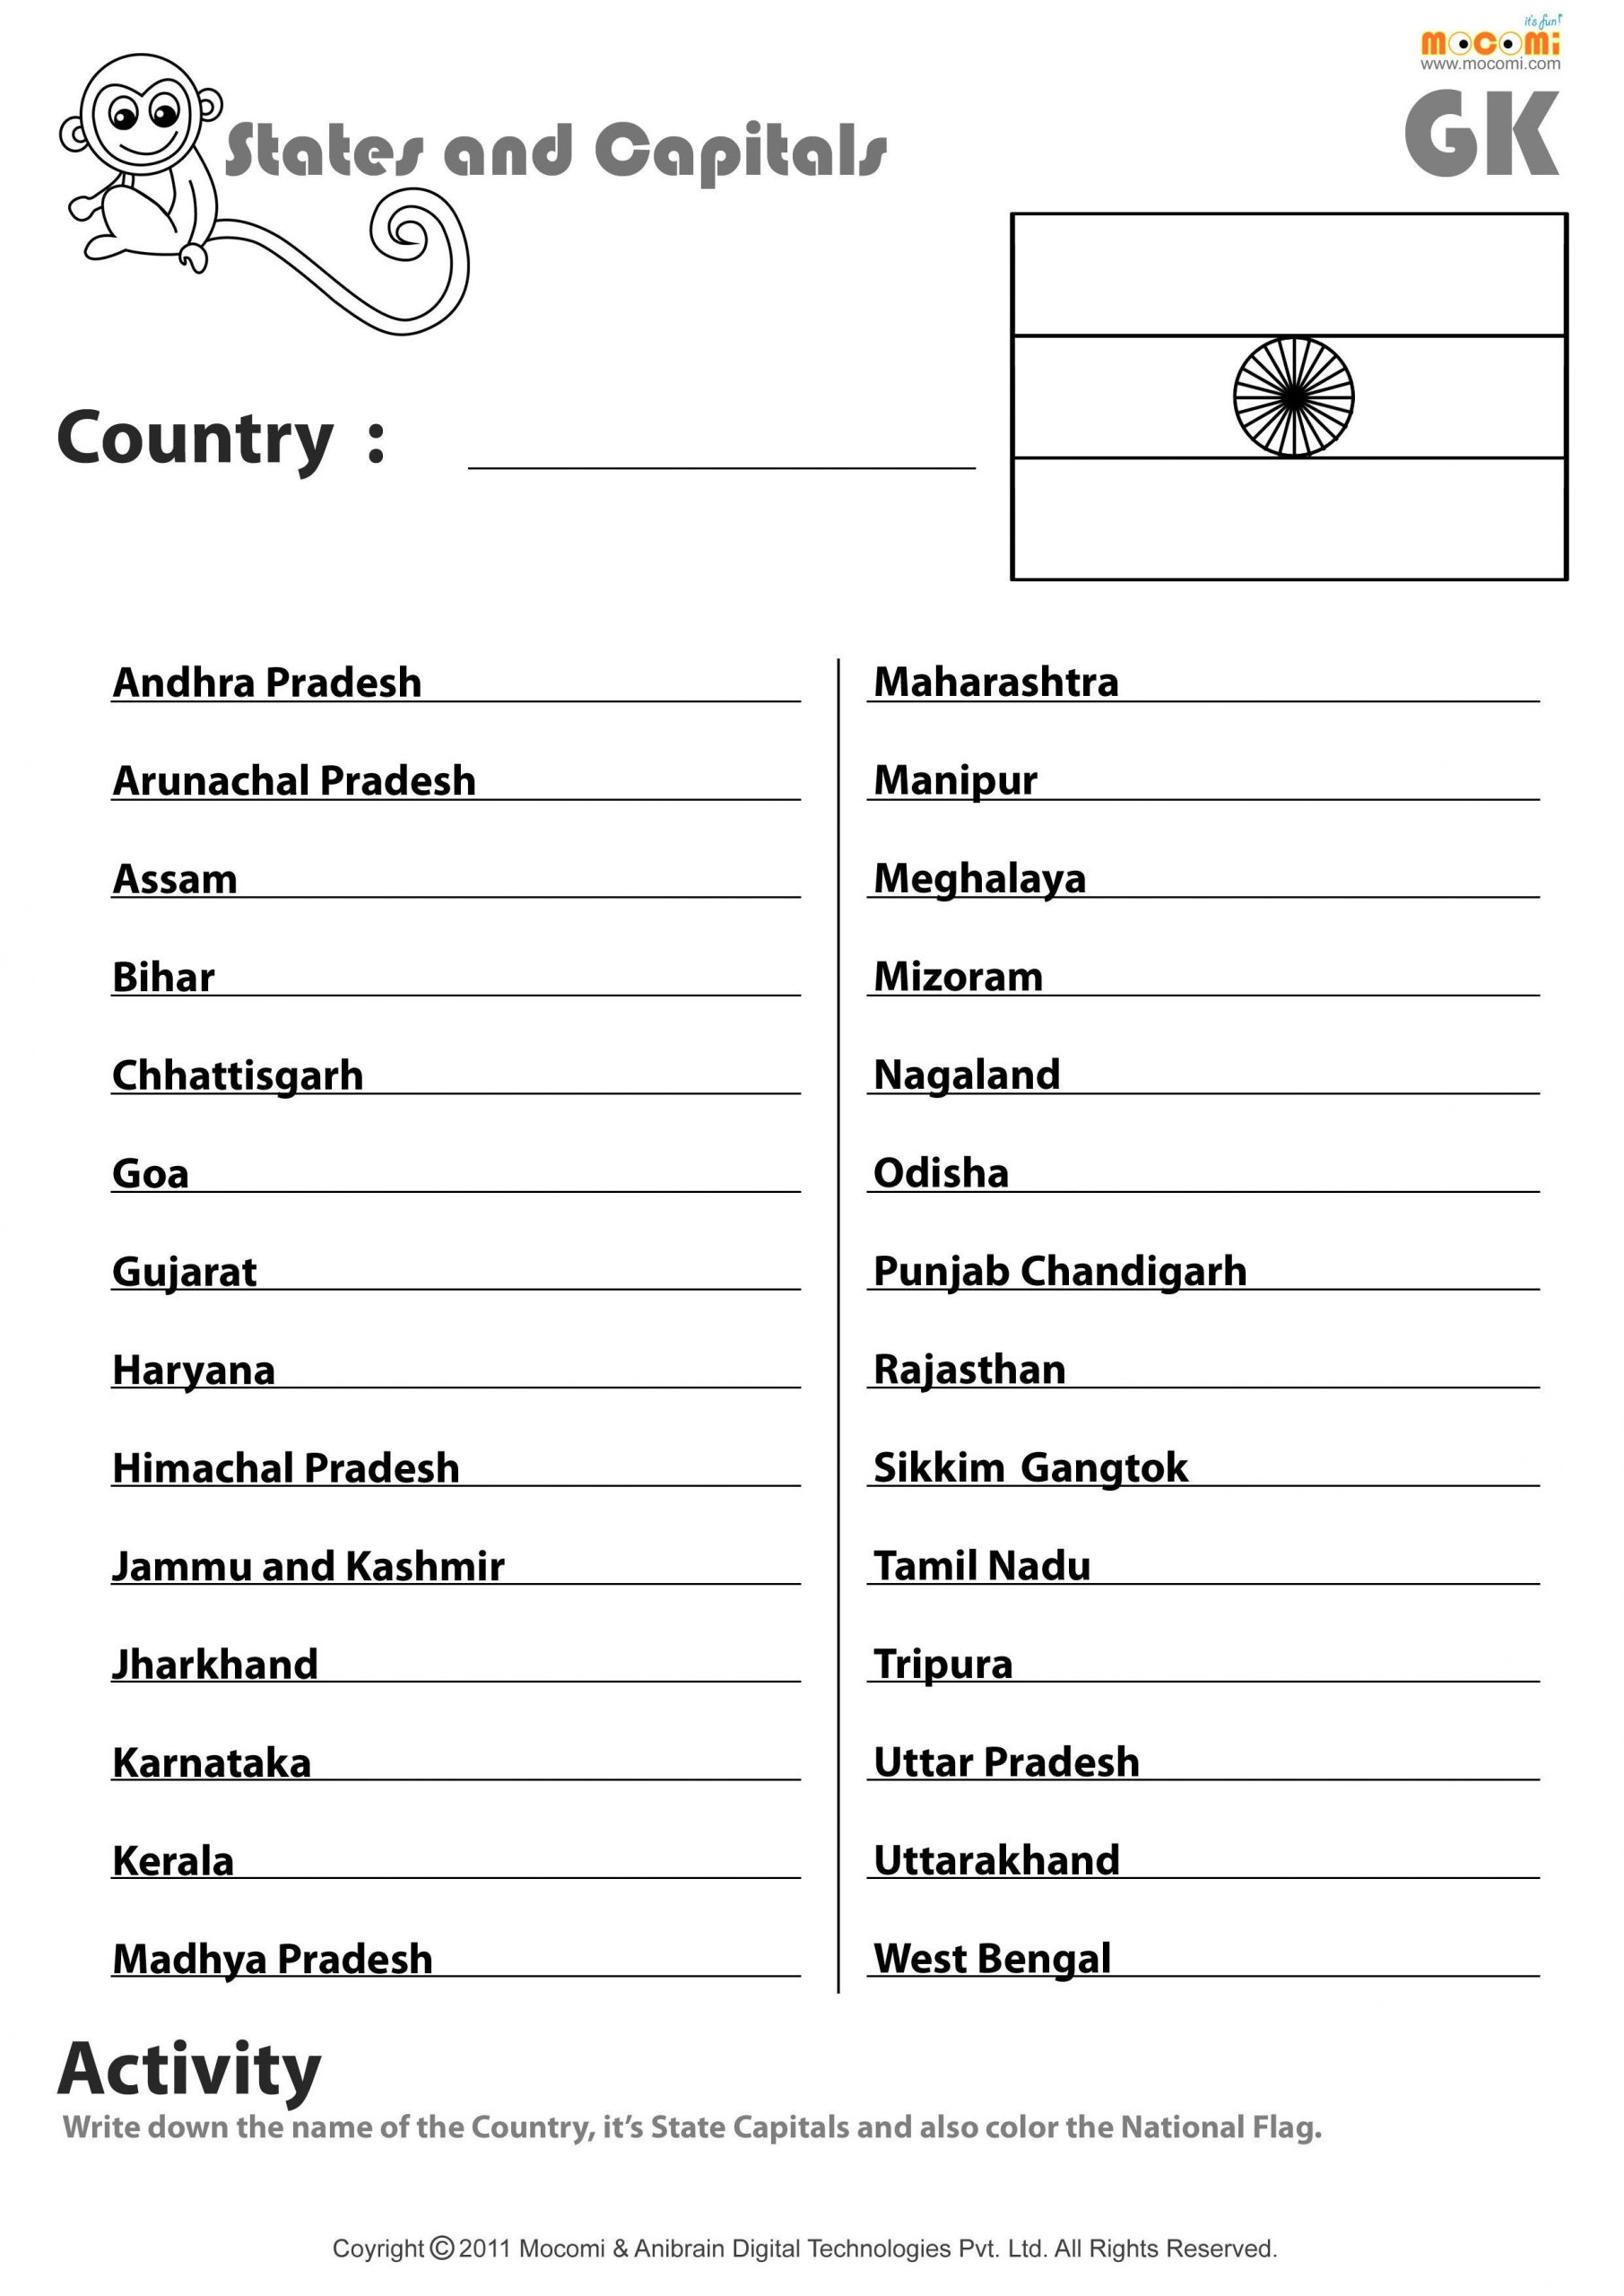 State and Capital Quiz Printable Identifying State Capitals Worksheet